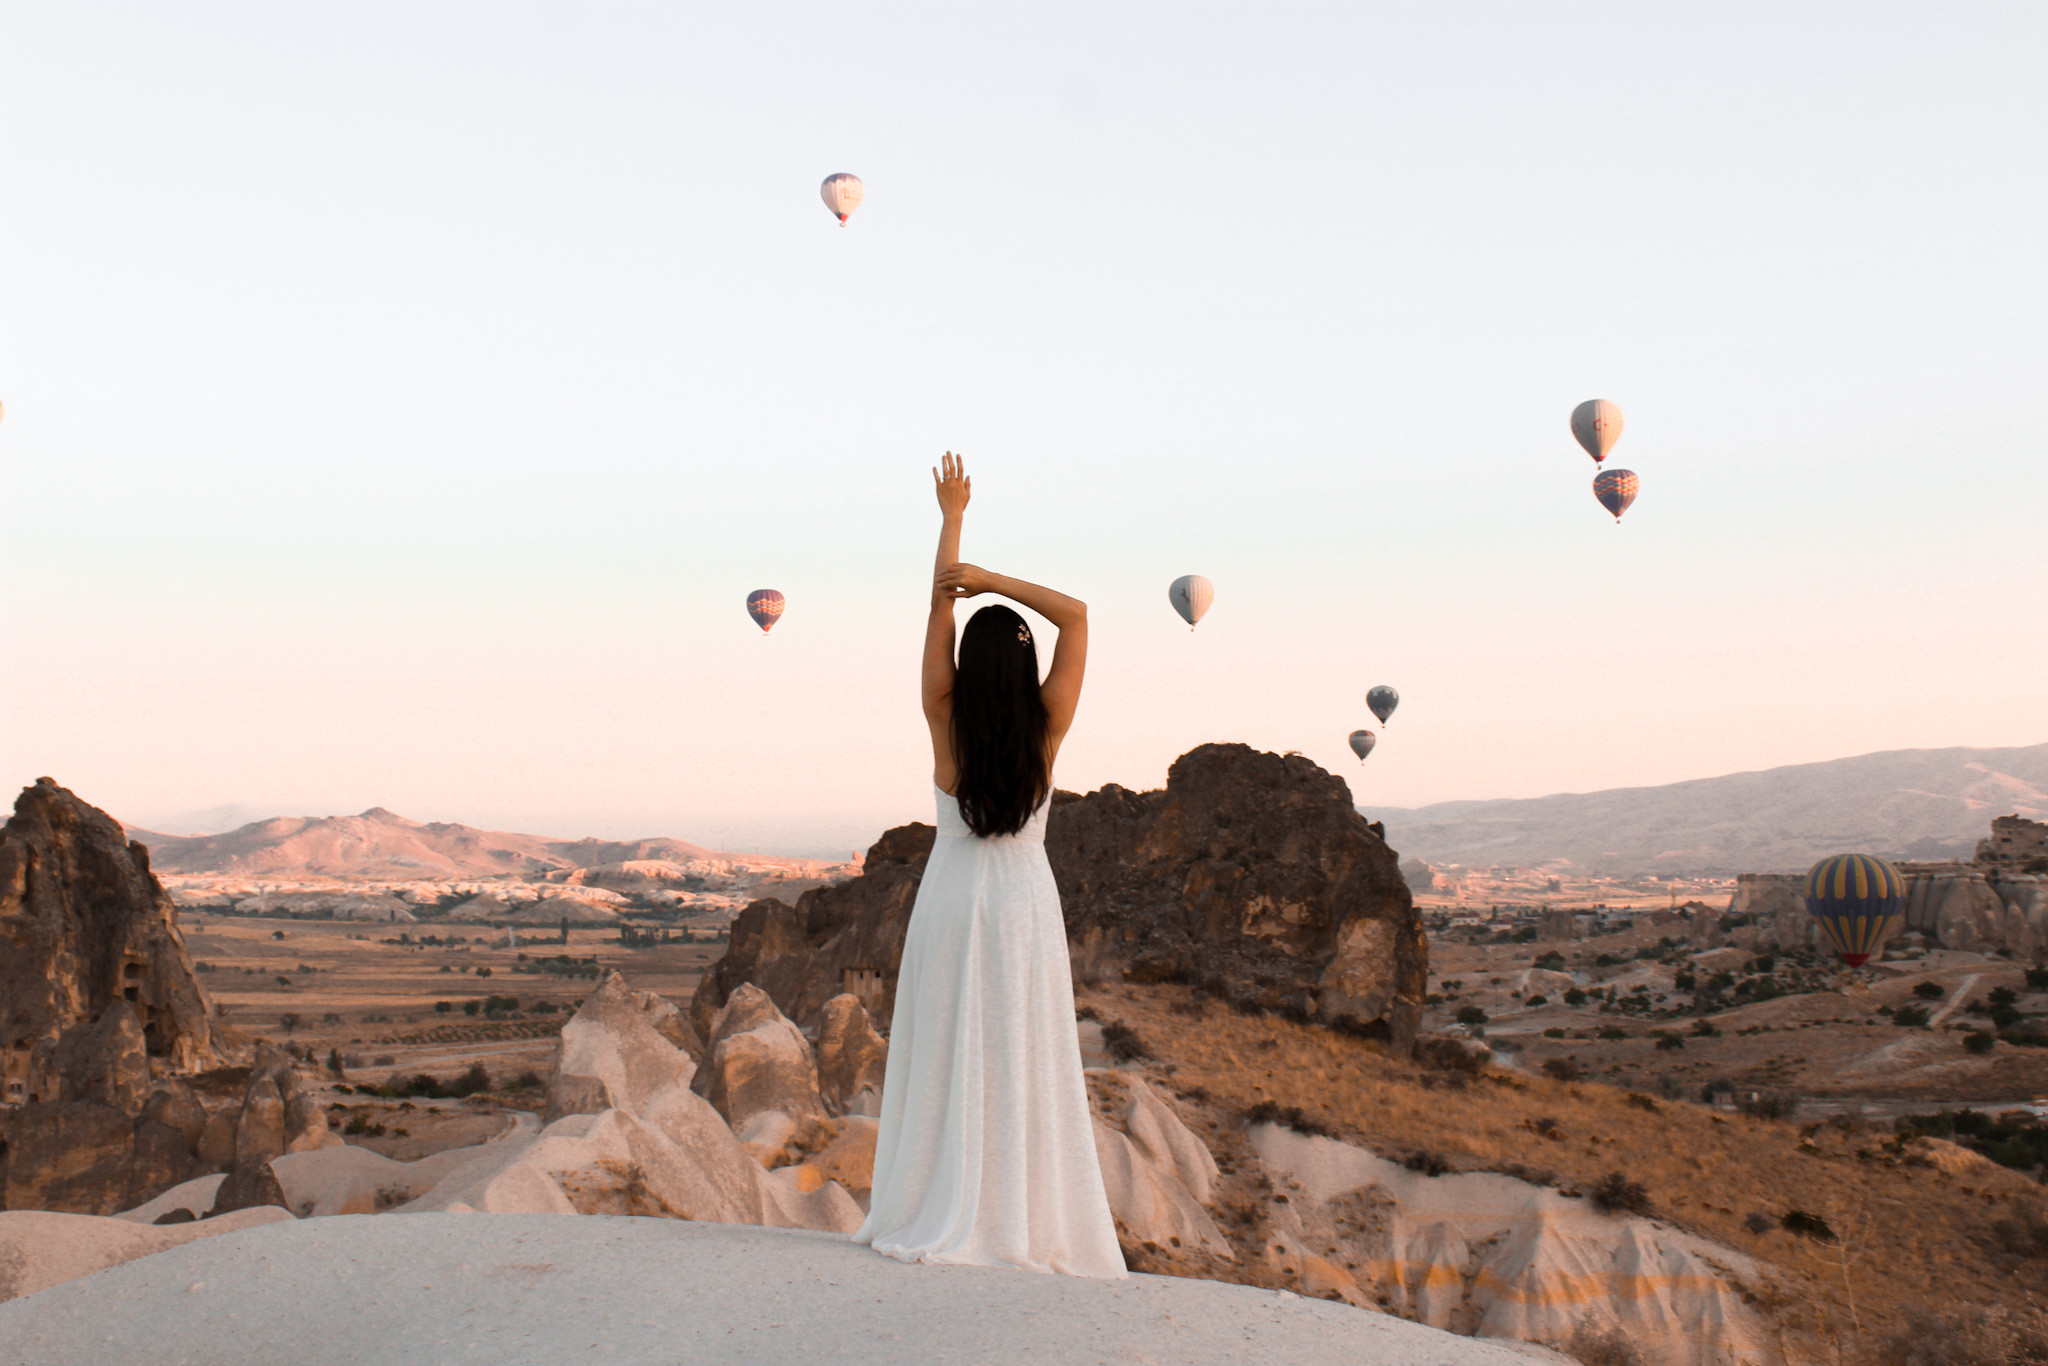 hot air balloon wedding - Cappadocia wedding - beautiful elopement photography - Turkish elopement photoshoot -